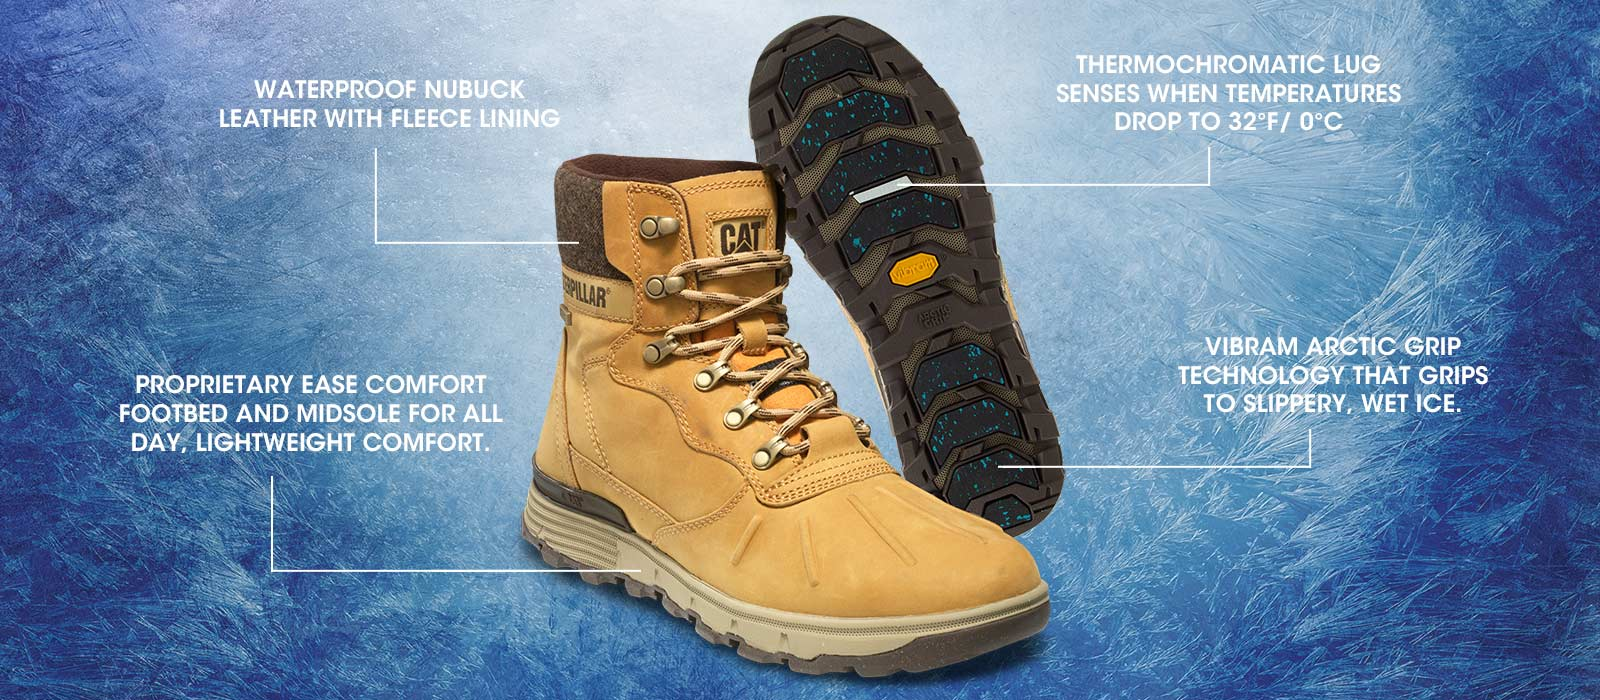 caterpillar shoes arctic grip technology